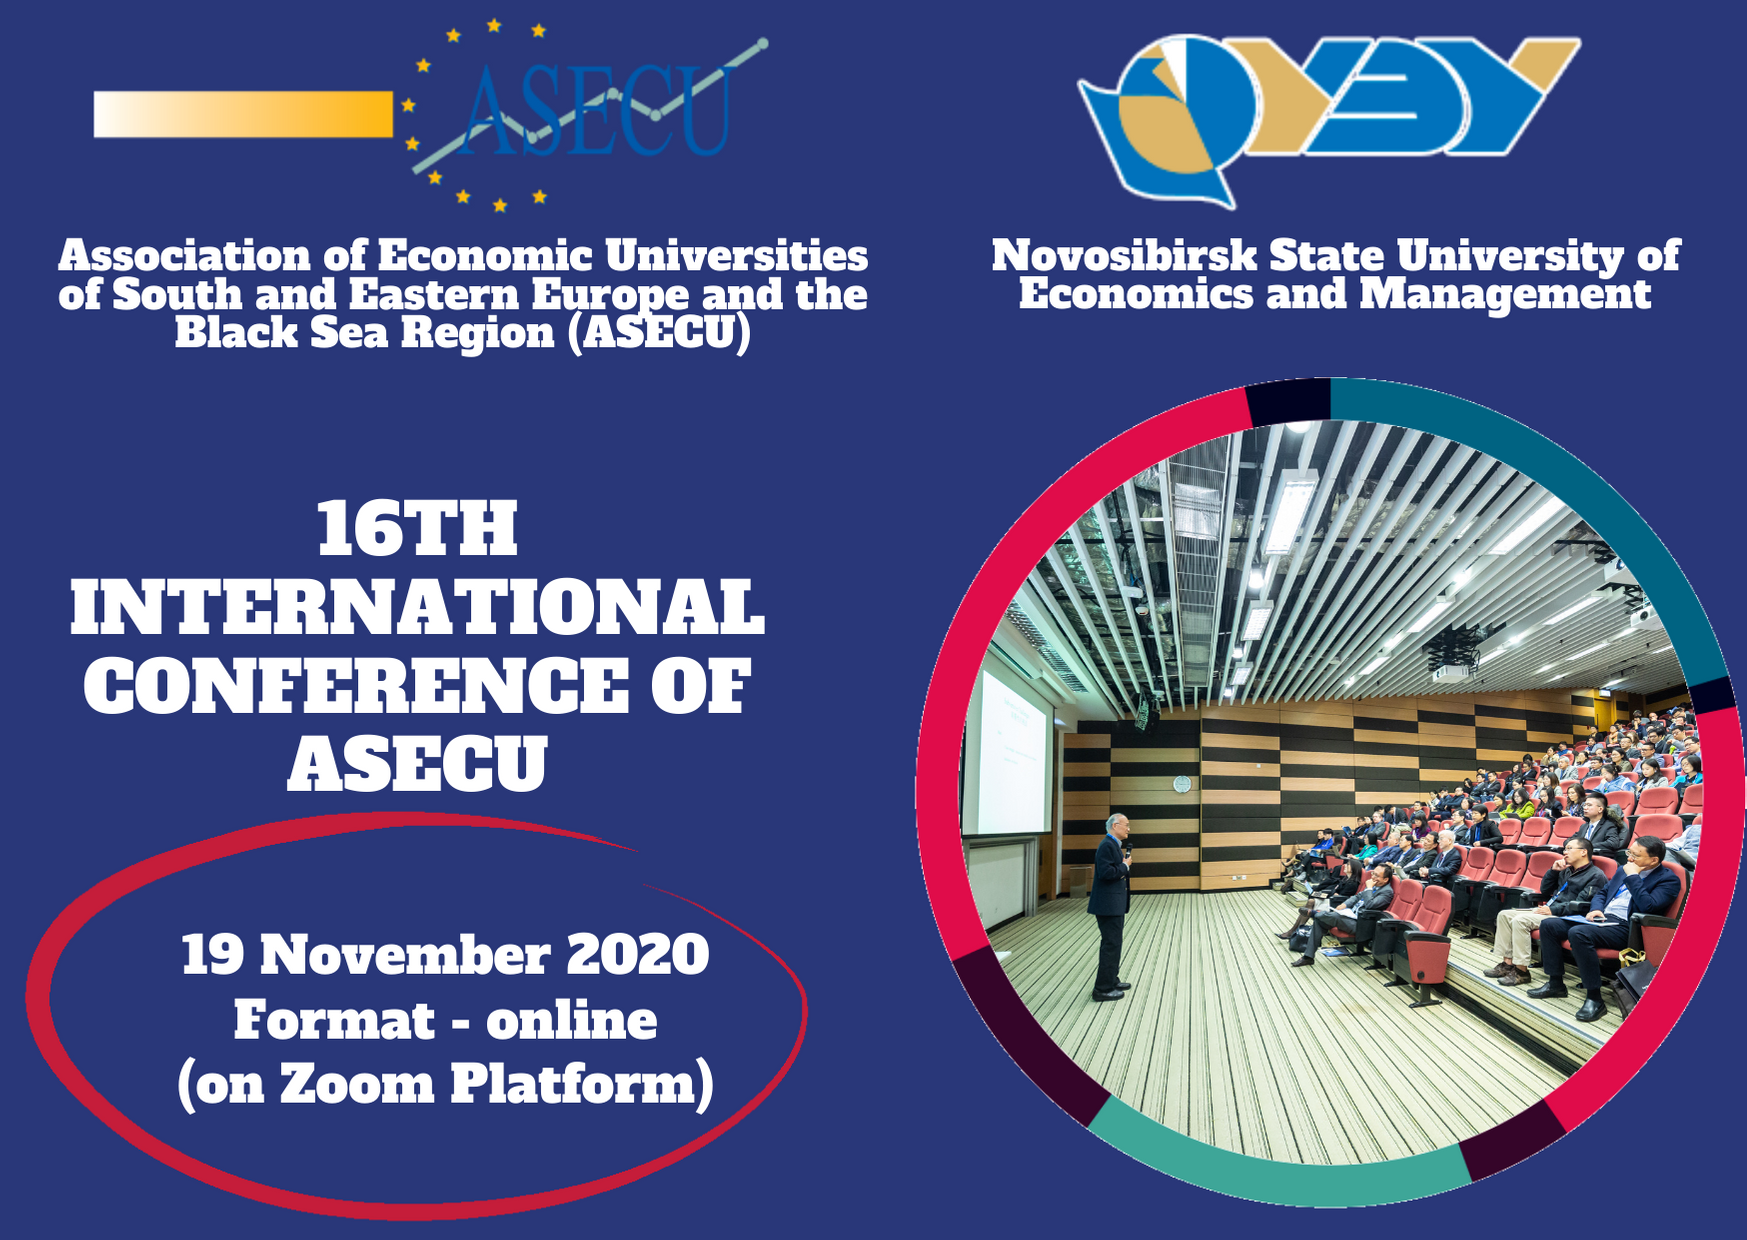 Submission of papers to the 16th International Conference of ASECU is open